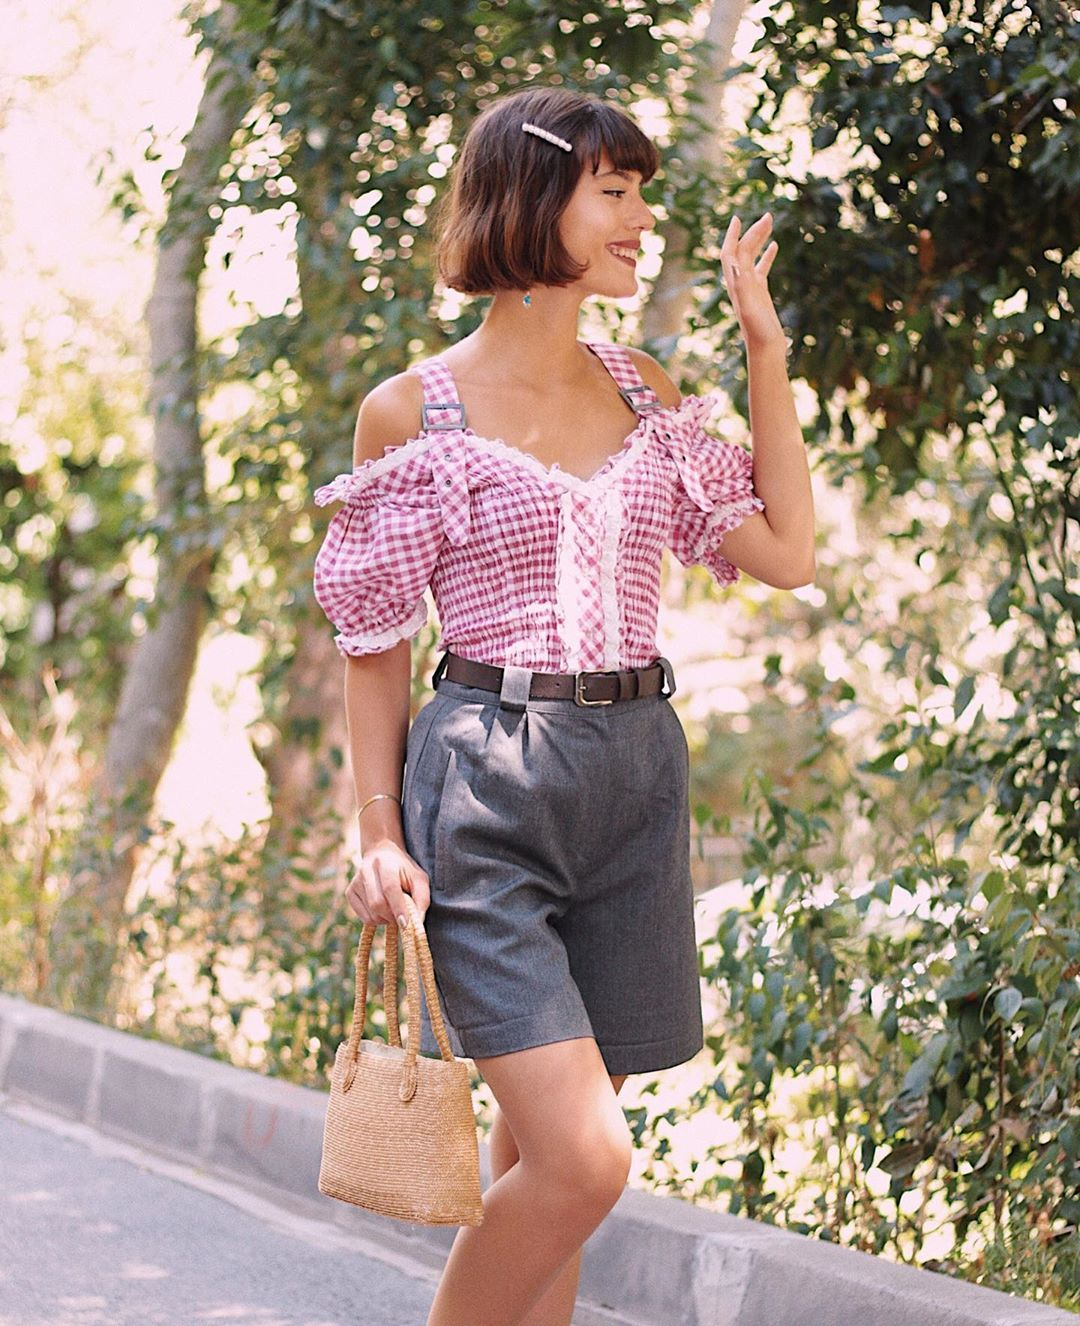 Pin On Cute Vintage Outfit Ideas That Make You Feel Nostalgic